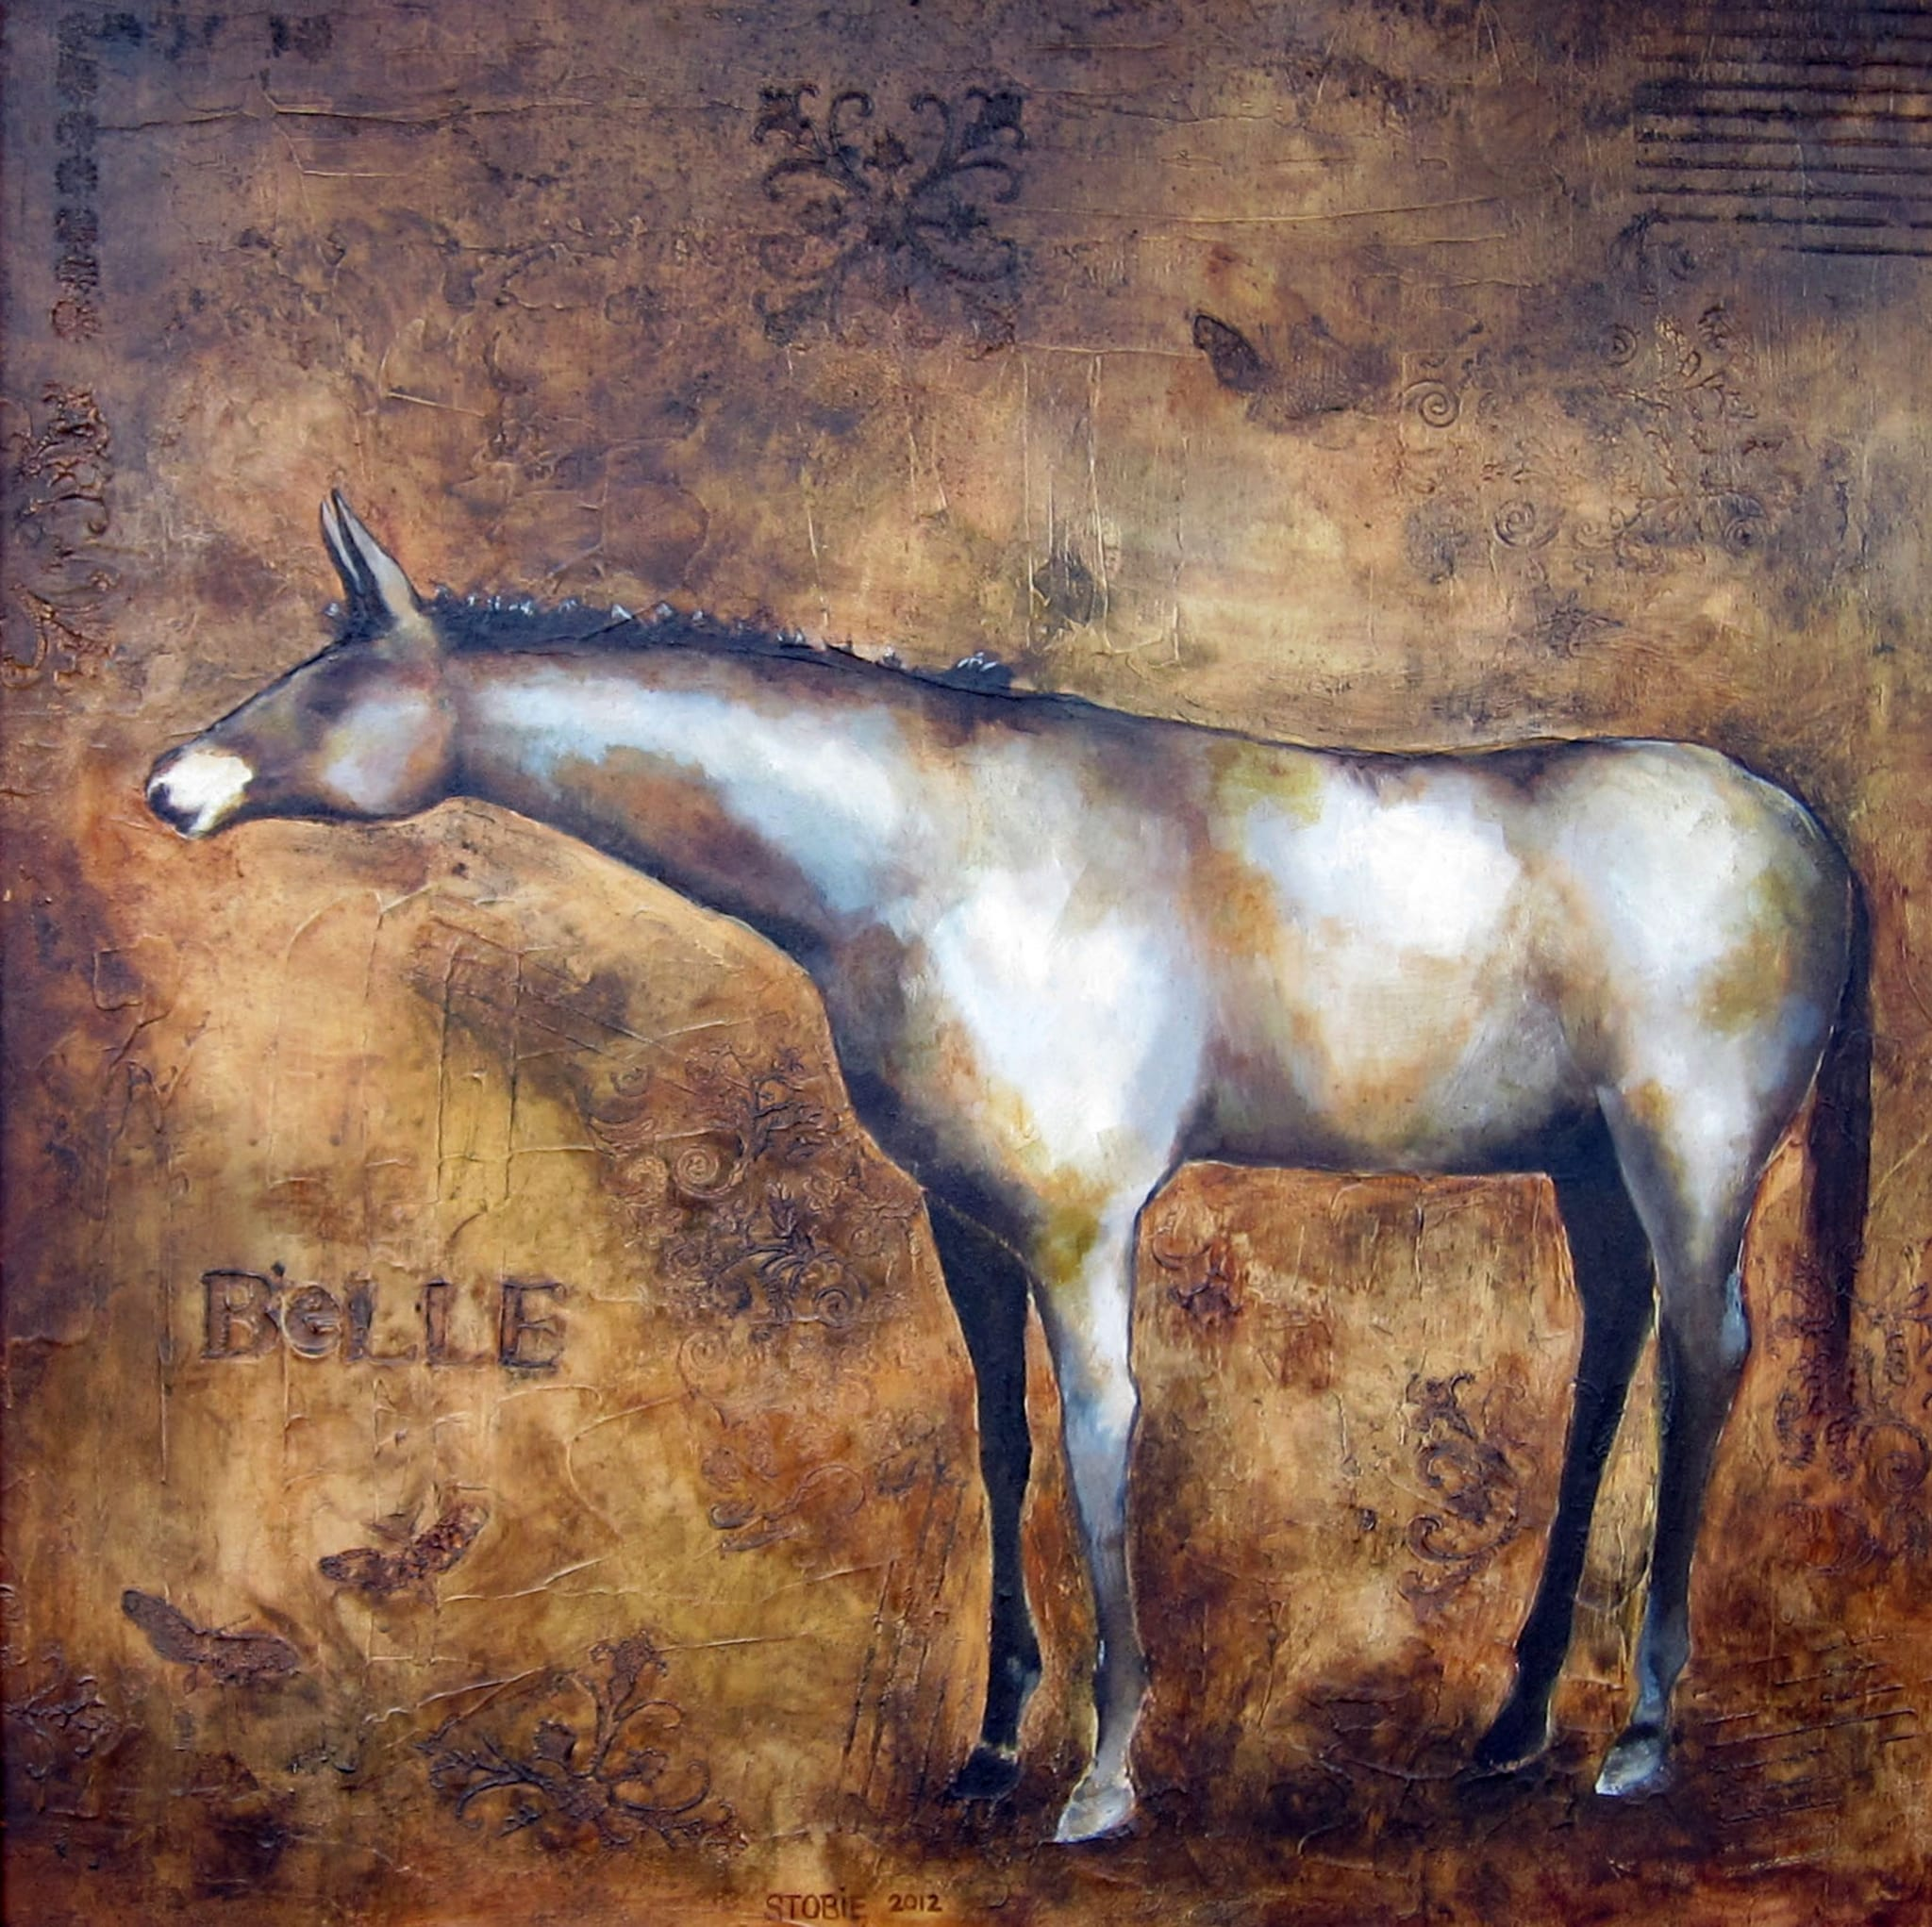 Belle, by Wenaha Gallery artist Monica Stobie.